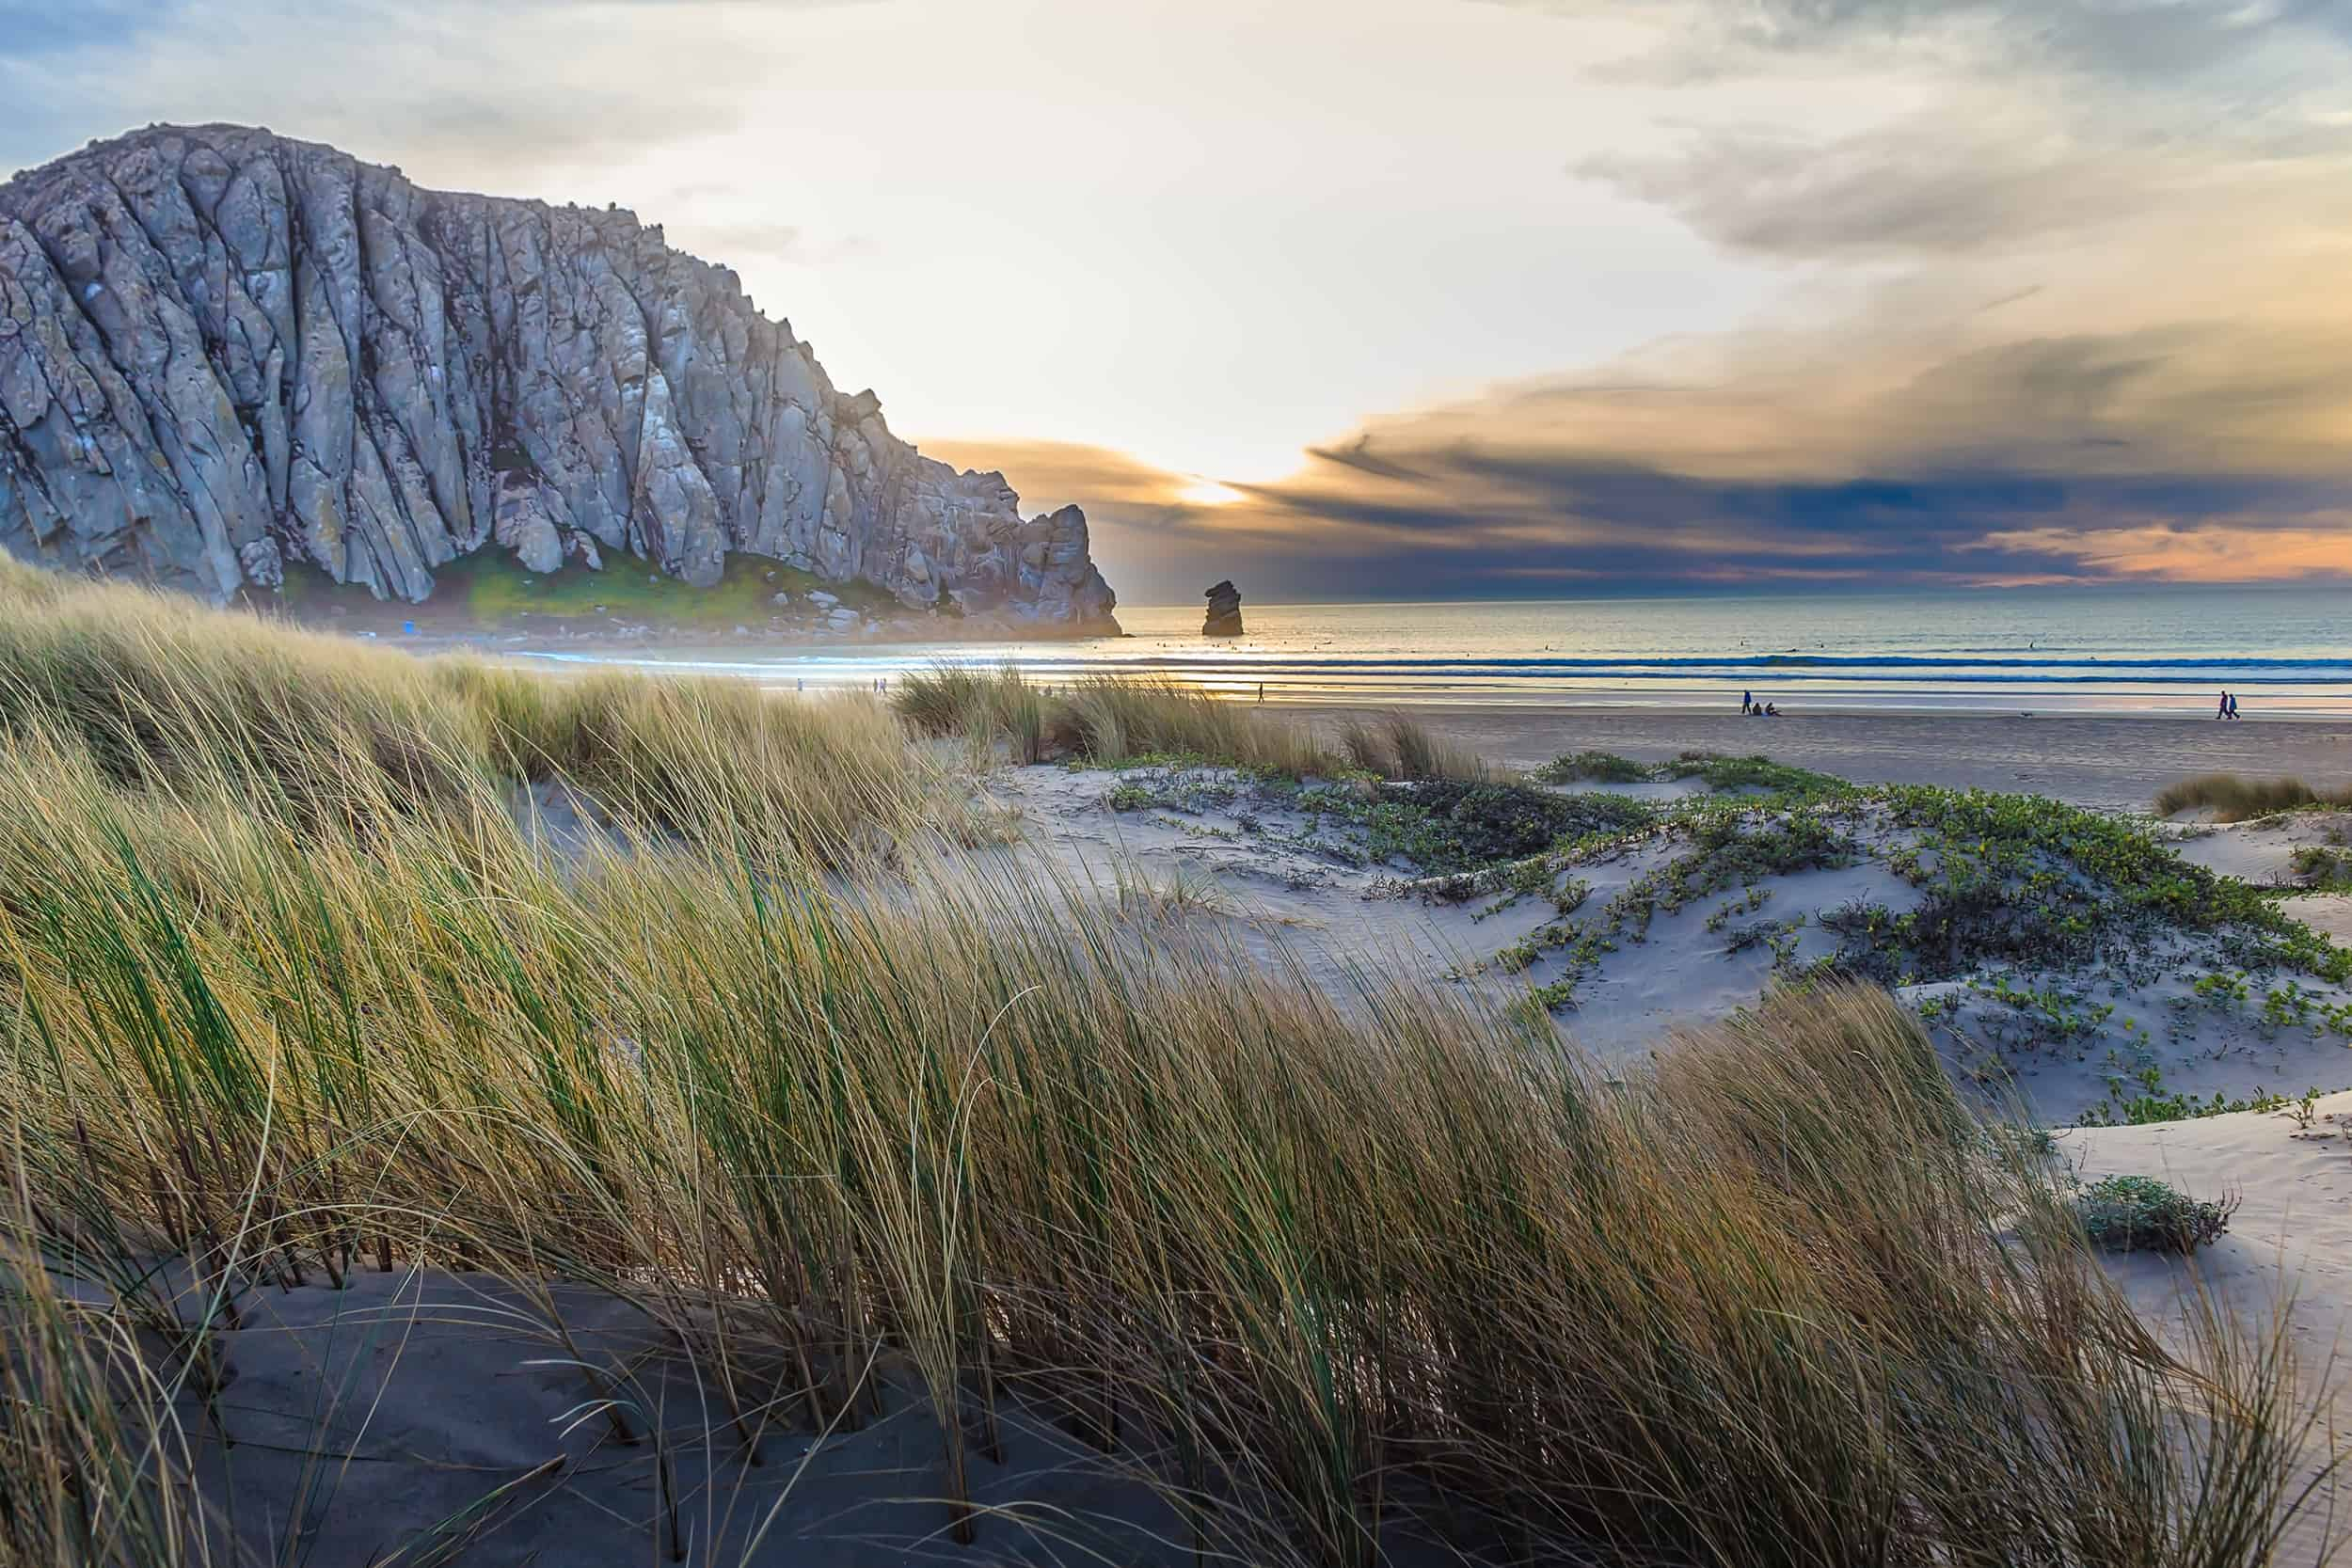 Go Here: Choose your own Adventure in Morro Bay, California